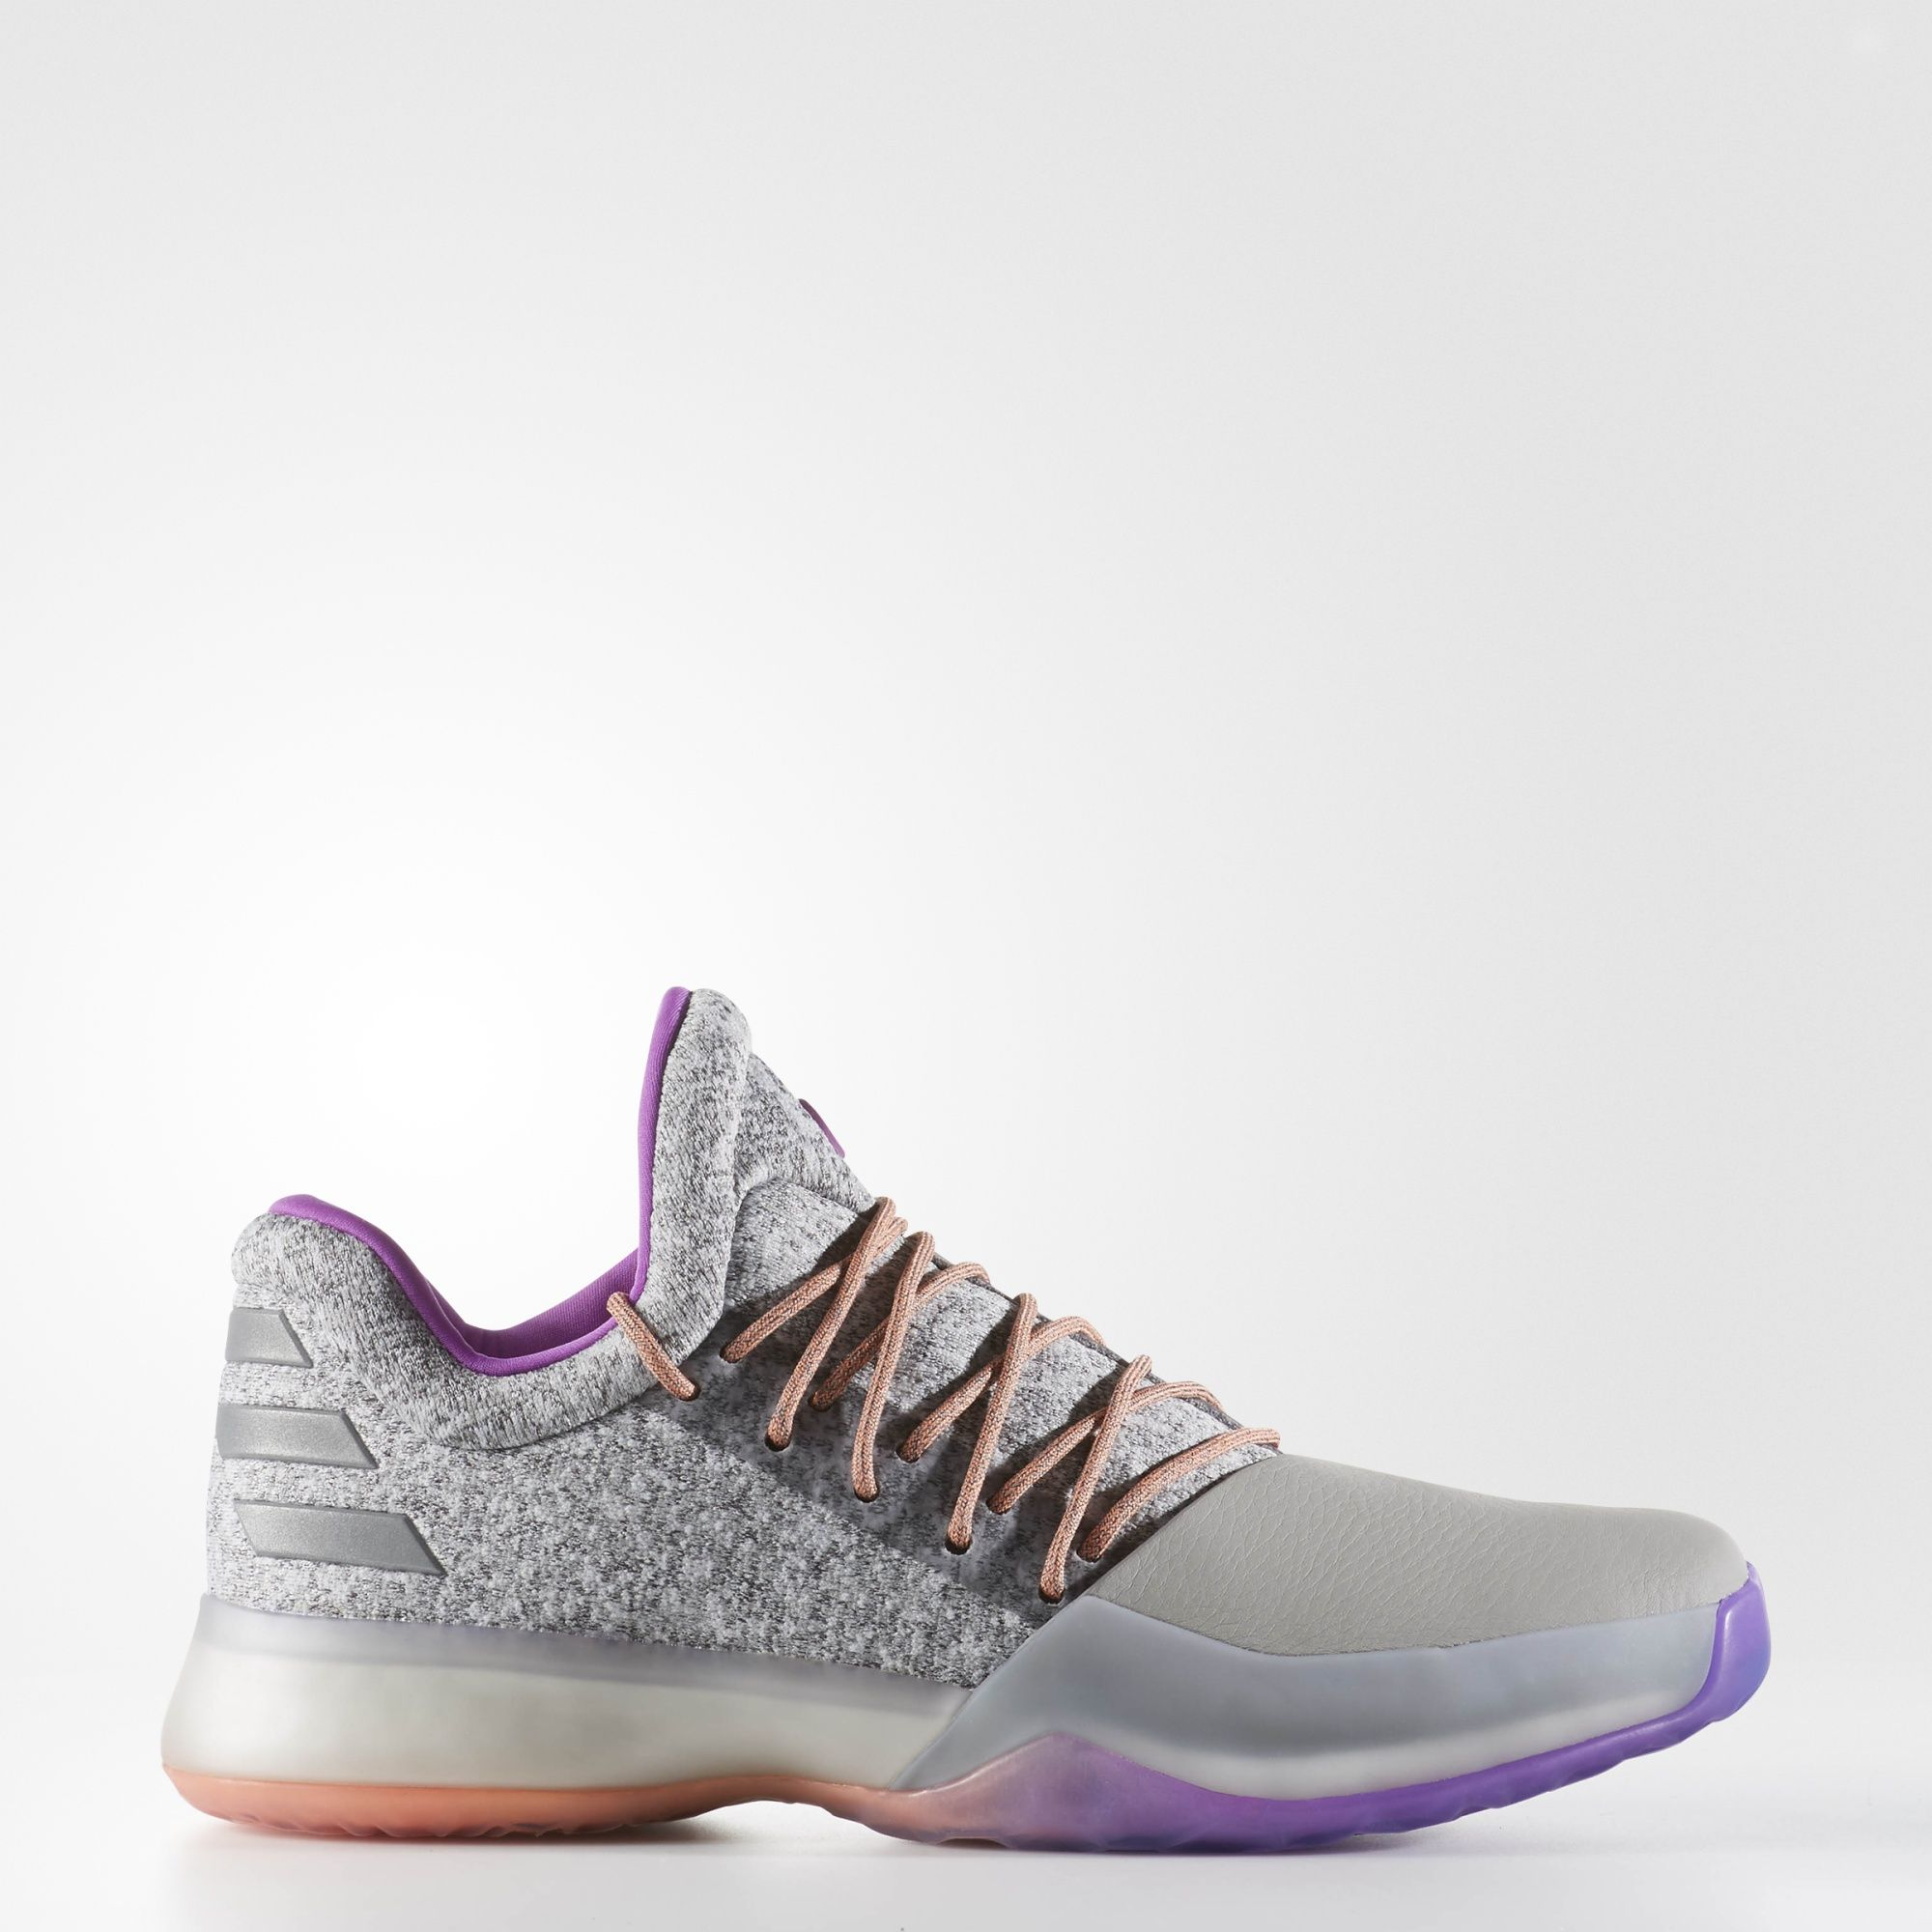 san francisco e35c5 e8765 With a pull-up dagger from 30 feet away, James Harden can drain shots and  win games in the crucial final minutes. Wake the game up in these basketball  shoes ...